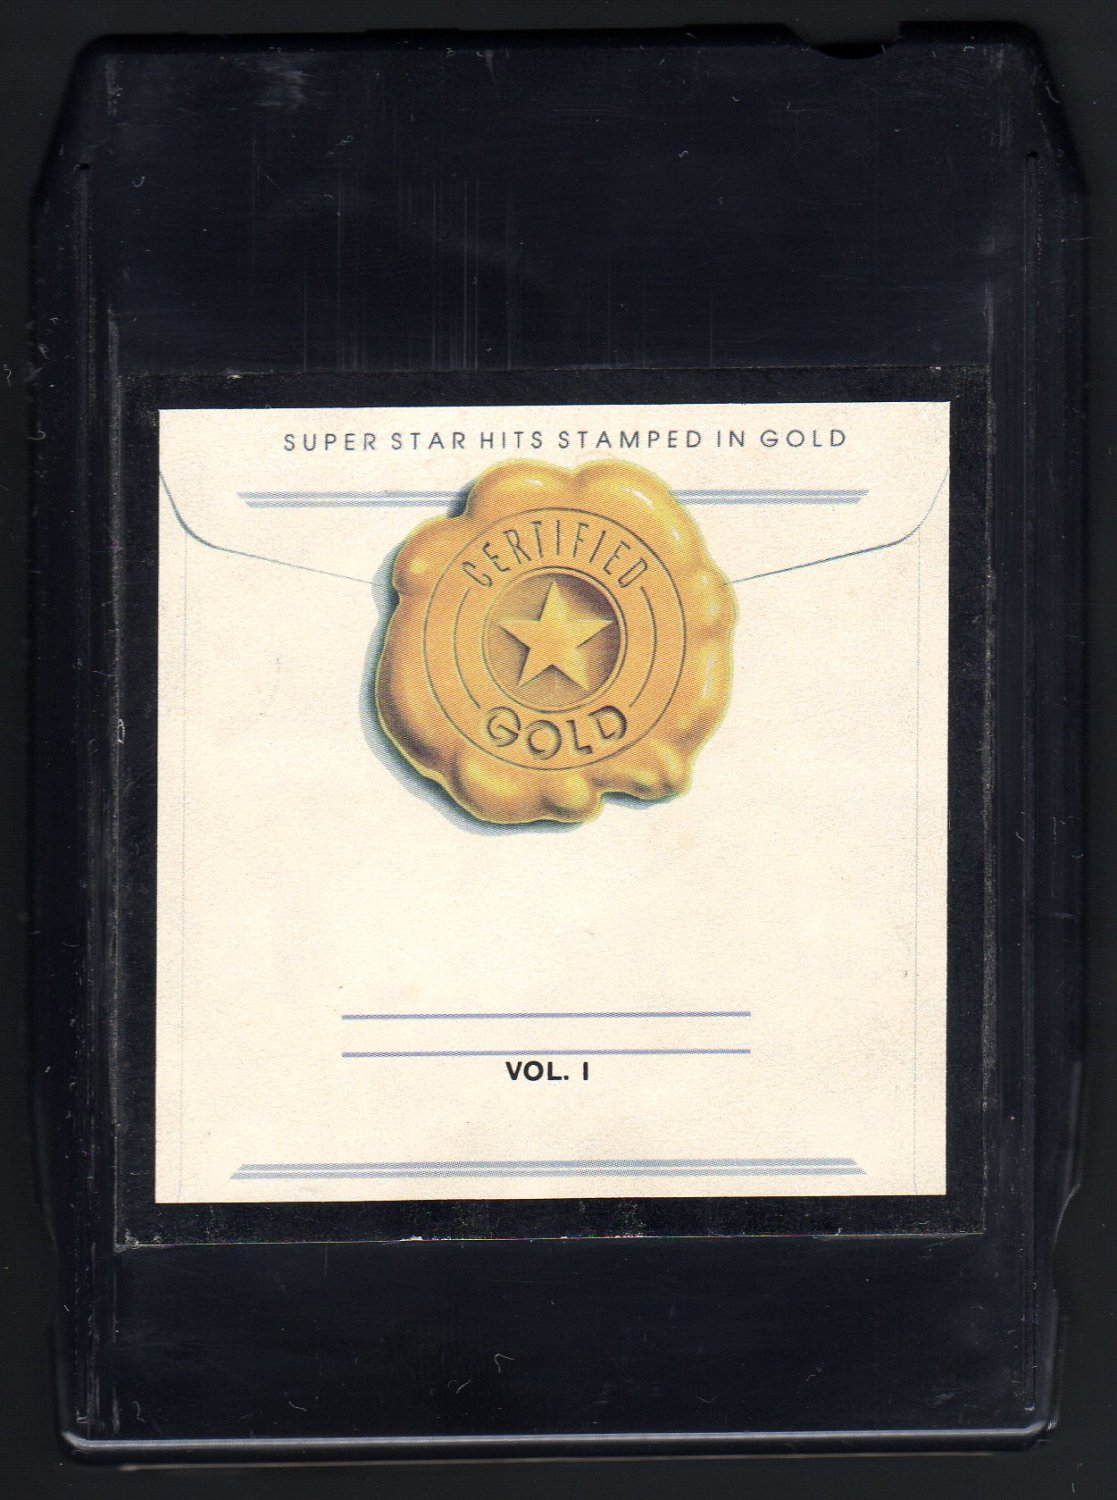 Certified Gold - Various Rock Vol 1 1981 KTEL A22 8-TRACK TAPE